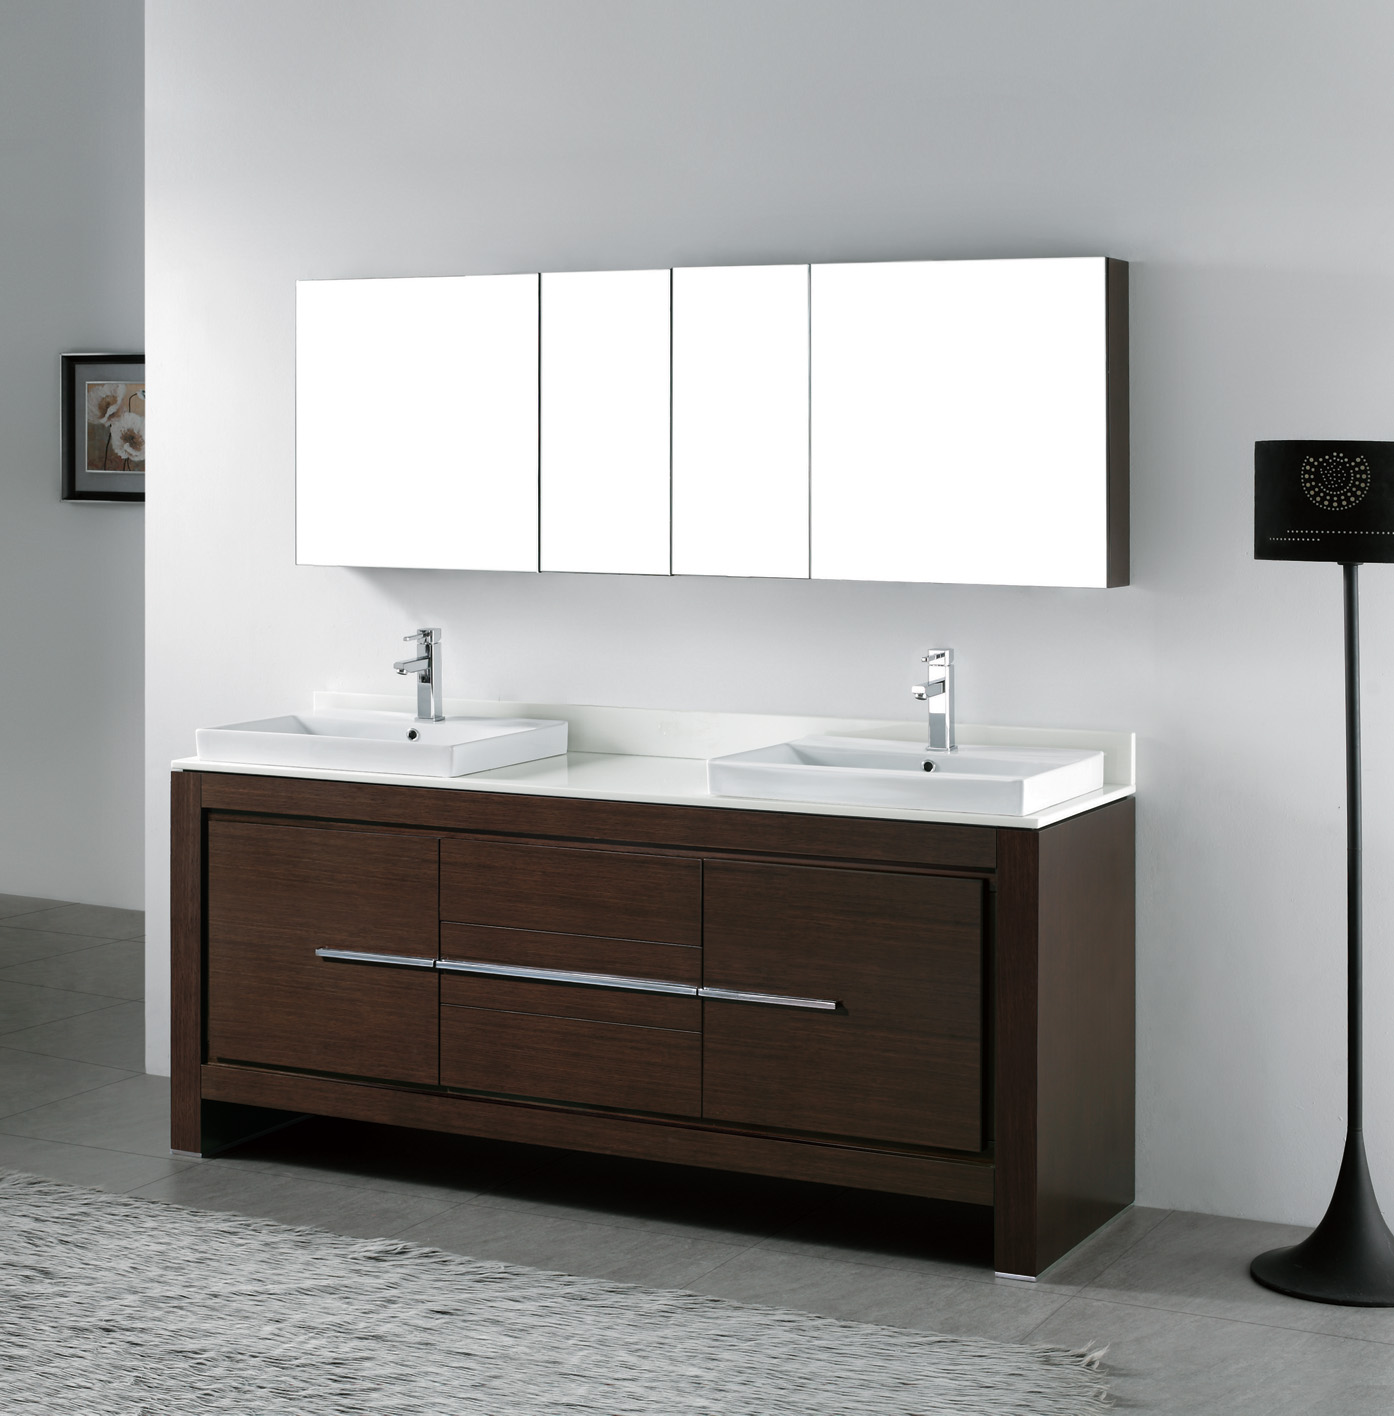 showcase england rgt works category in furniture the bathroom bespoke wood made bathrooms